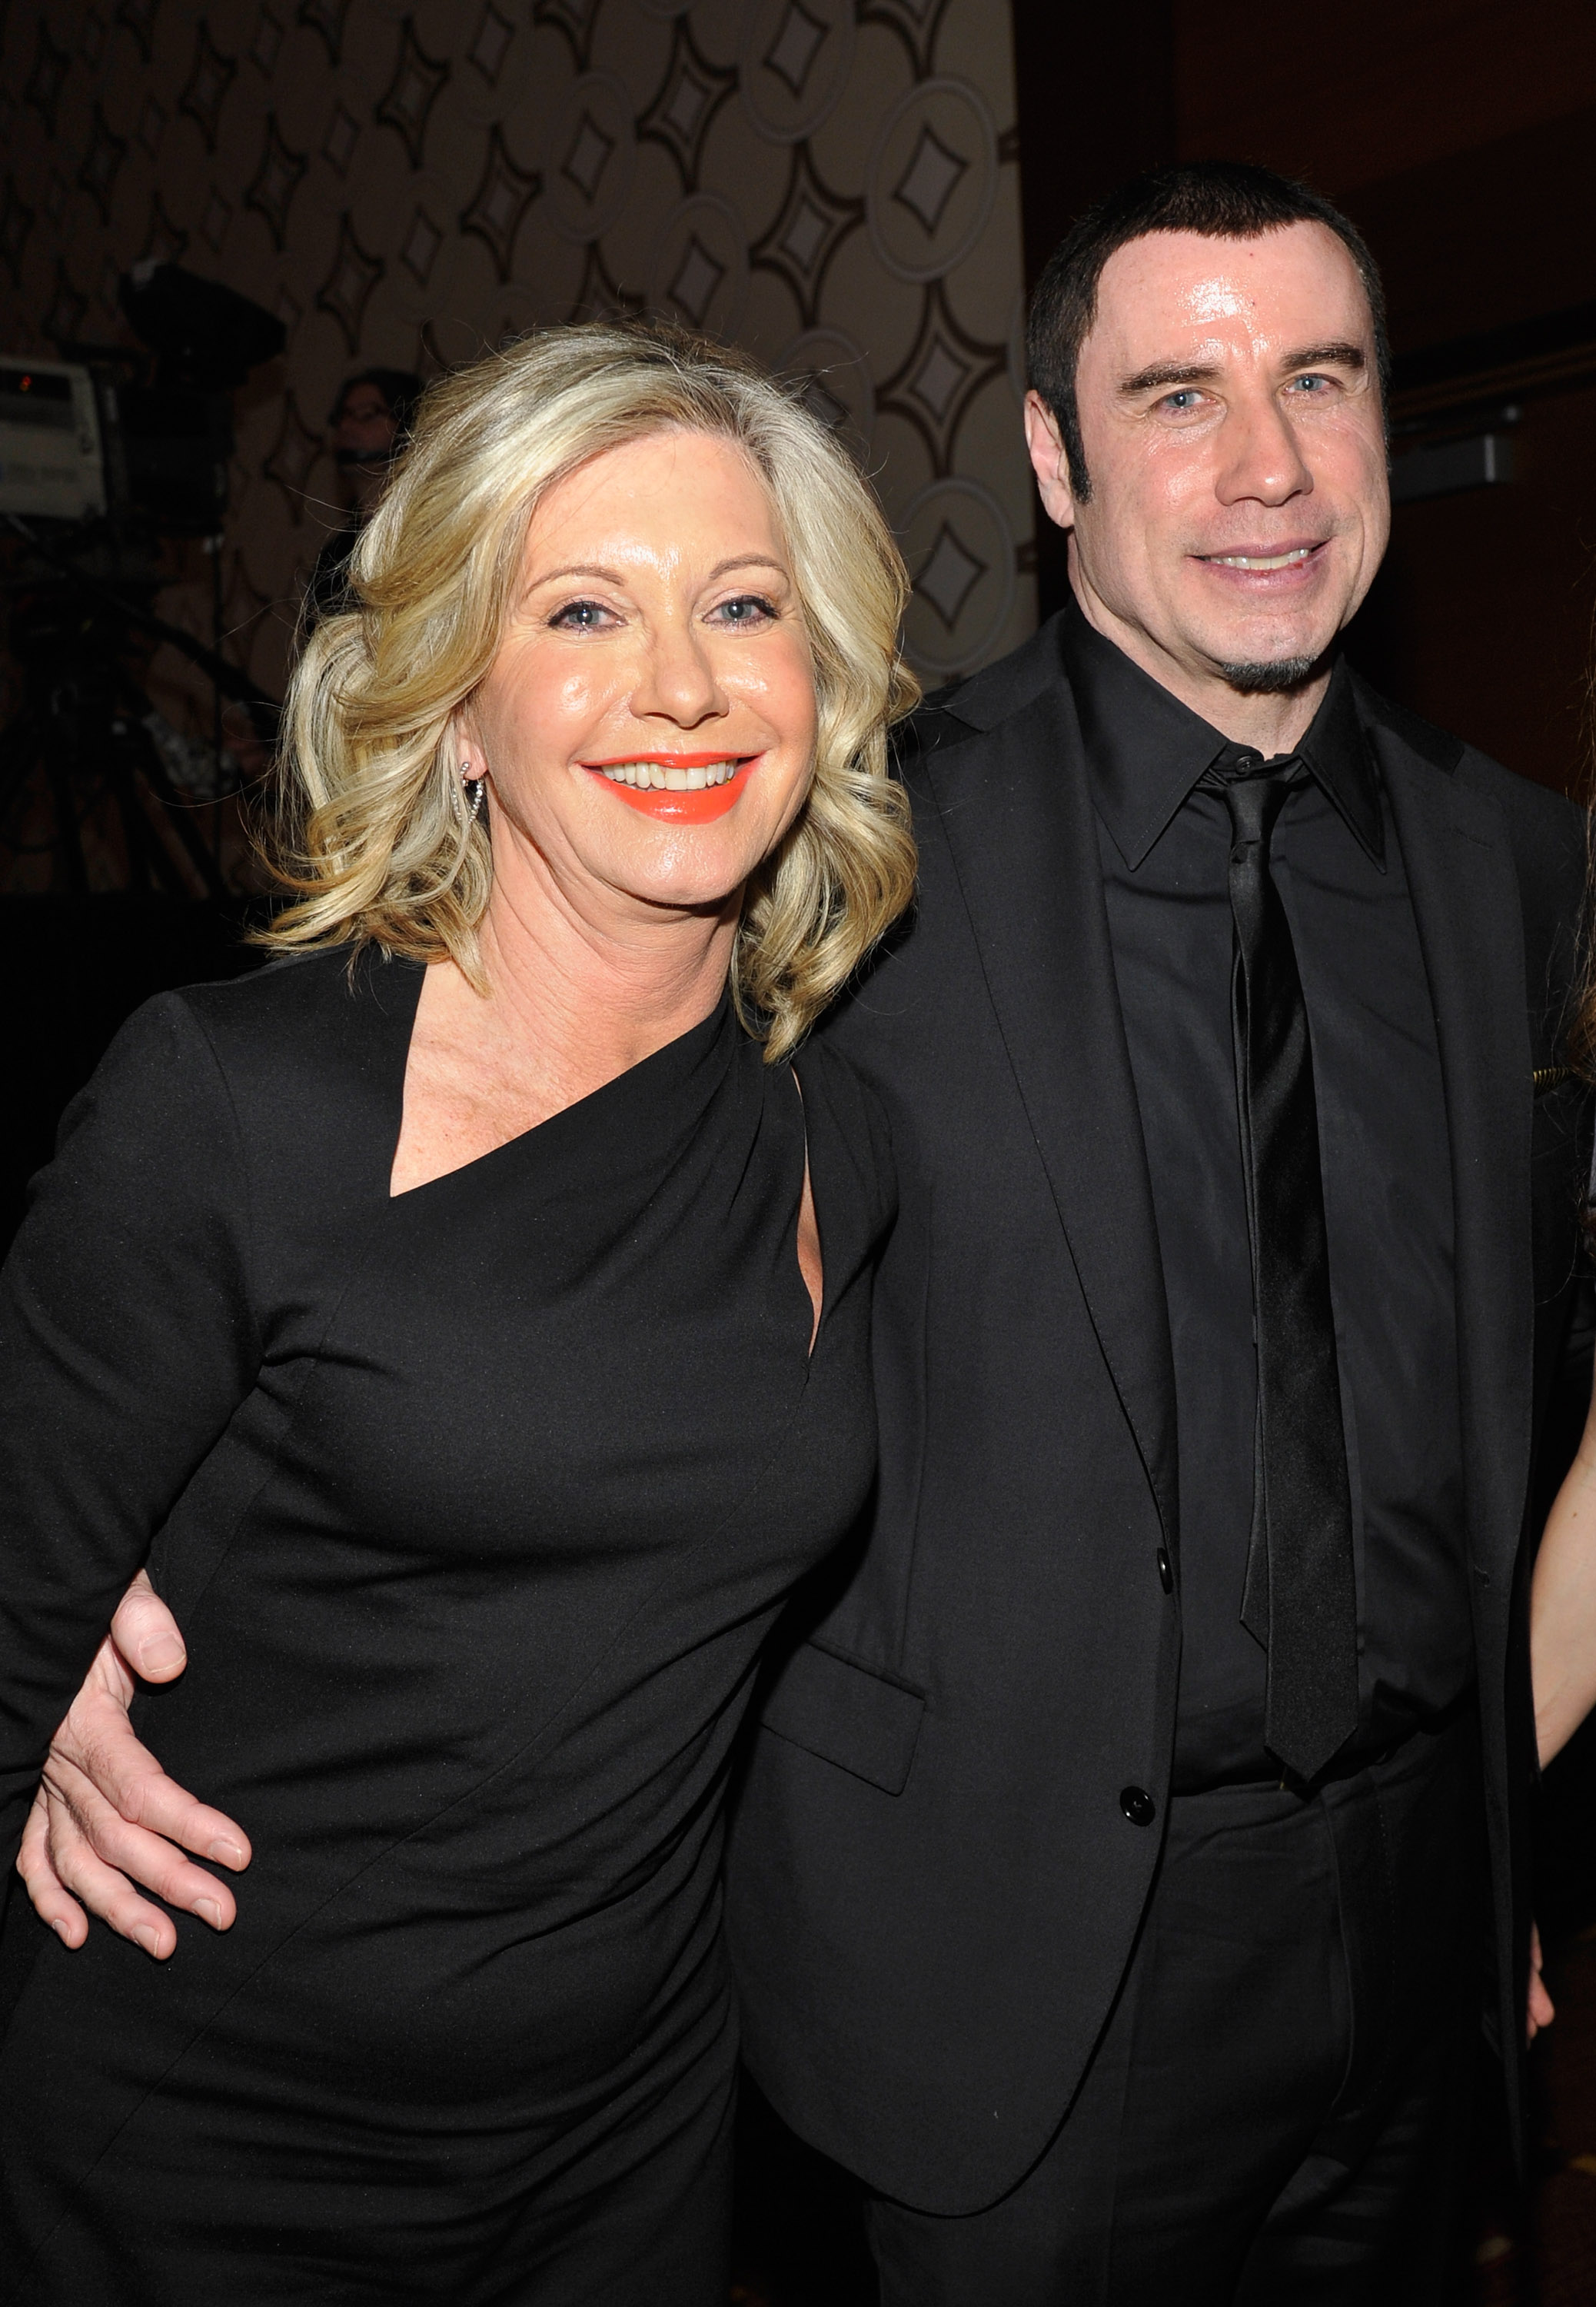 Presenter Olivia Newton-John and honoree John Travolta attend the 2013 G'Day USA Los Angeles Black Tie Gala at JW Marriott Los Angeles at L.A. LIVE on January 12, 2013 in Los Angeles, California. (Photo by John Sciulli/Getty Images for G'Day Australia)